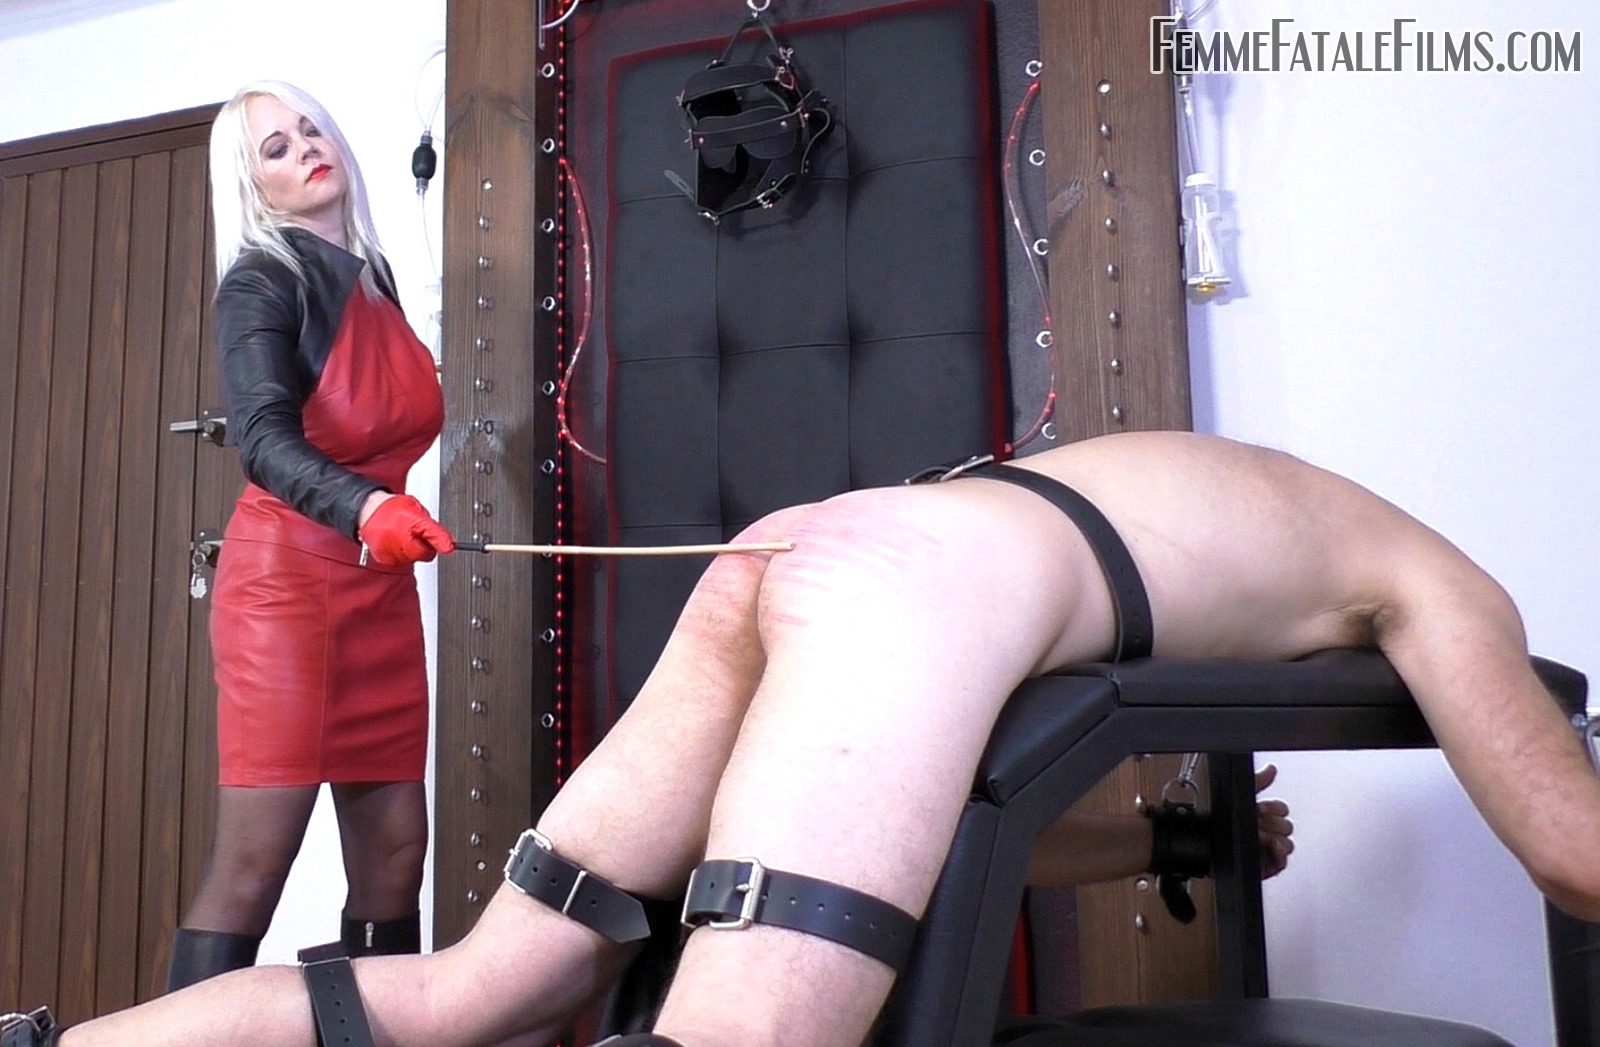 Featuring Divine Mistress Heather. Breaking slaves in to new experiences is always a pleasure of mine, especially when the experience is an extreme one! In this session, I intensify the suffering for one of my personal slaves with the use of several whips, single tails and a beautiful and vicious cat-o'-nine. When it came to the cane, a form of treatment this slave especially hates, I decided to give him the three dragon treatment! Three brutal dragon canes of differing density to ensure he got a good range of agonizing sensations.